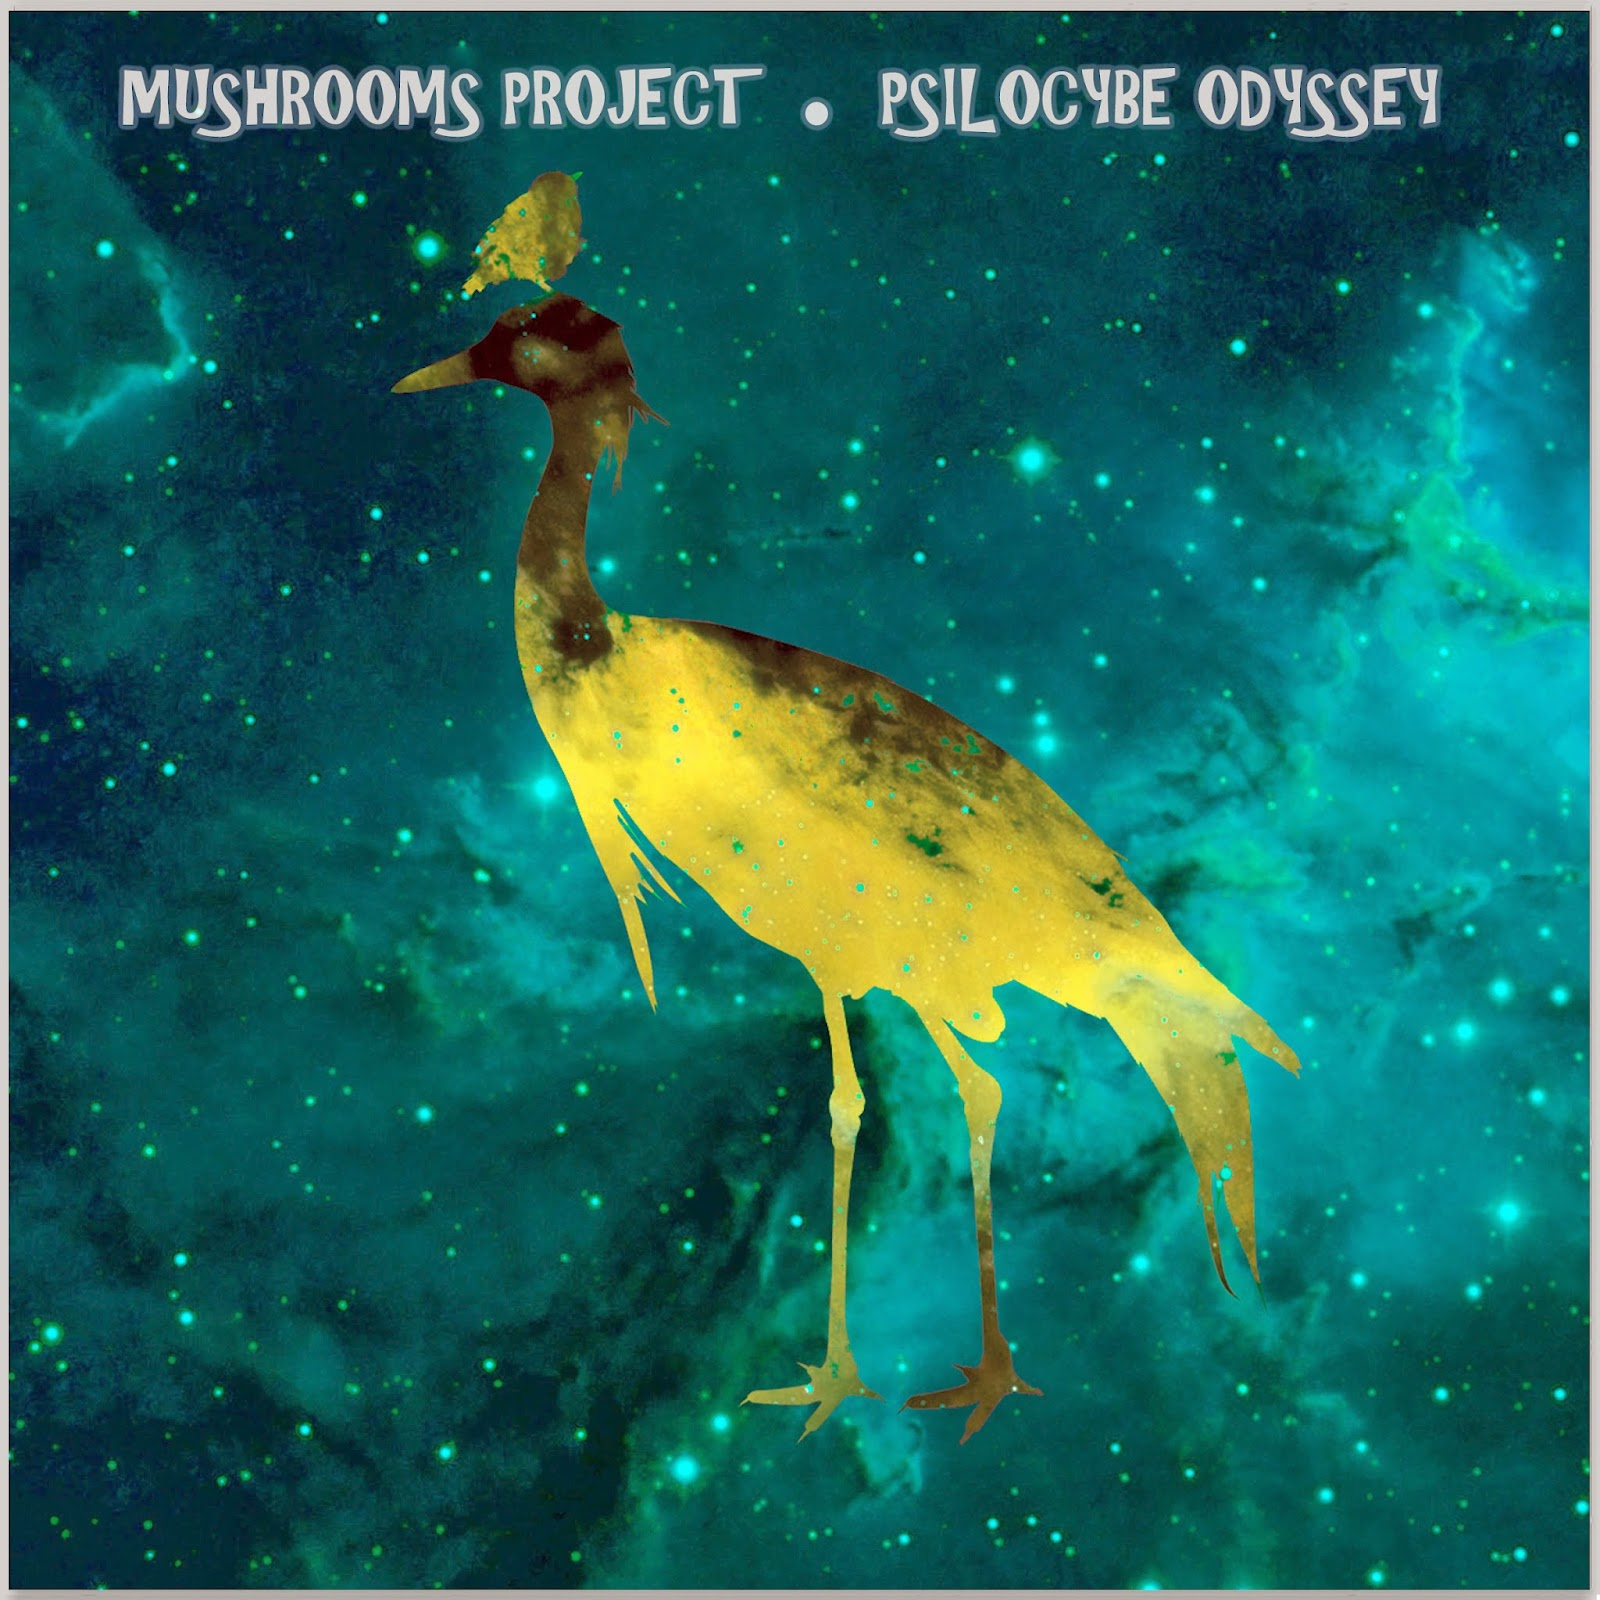 Discosafari - MUSHROOMS PROJECT - Psilocybe Odyssey Pt 1 & 2 - Opilec Music